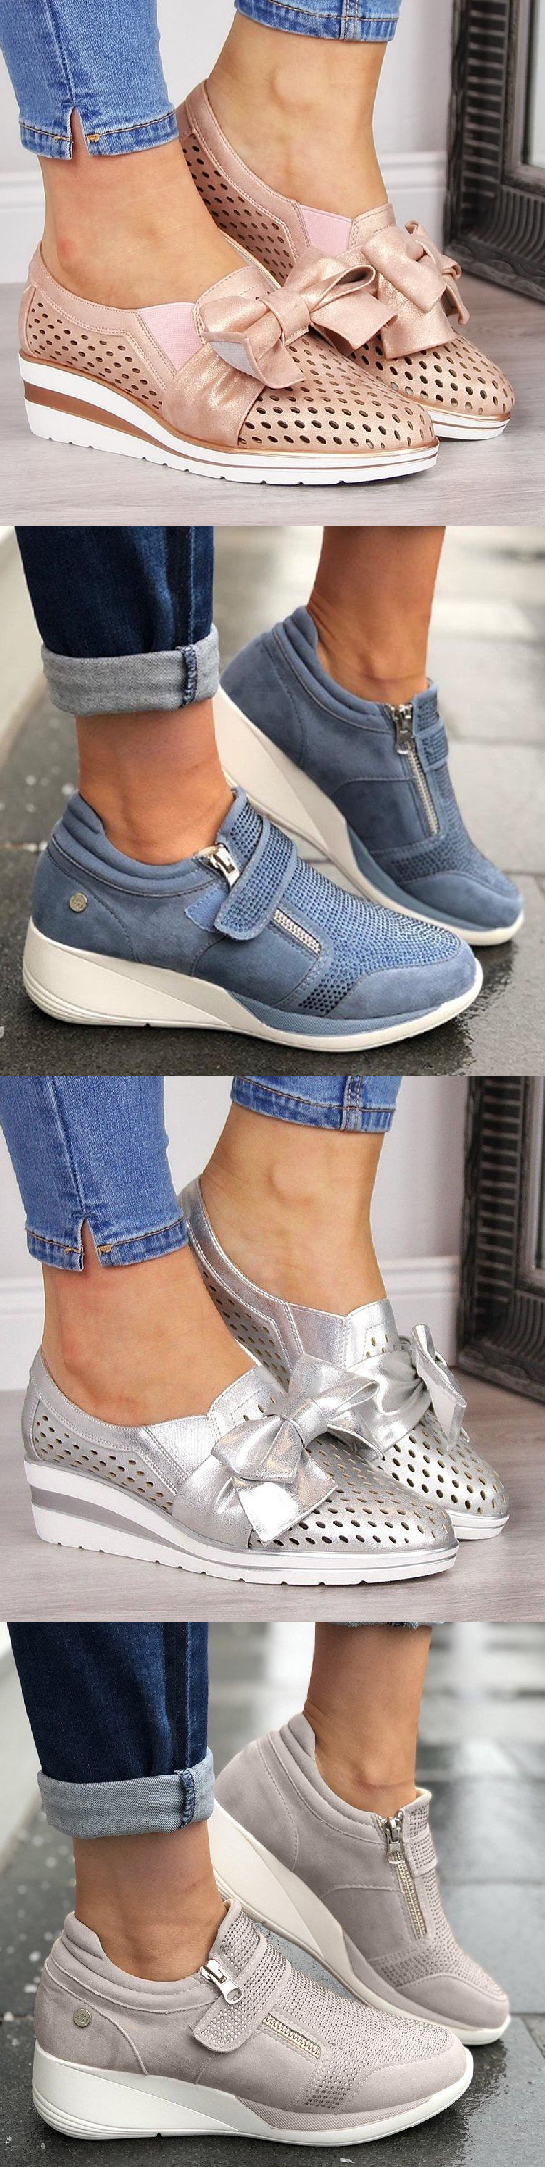 comfy canvas sneakers